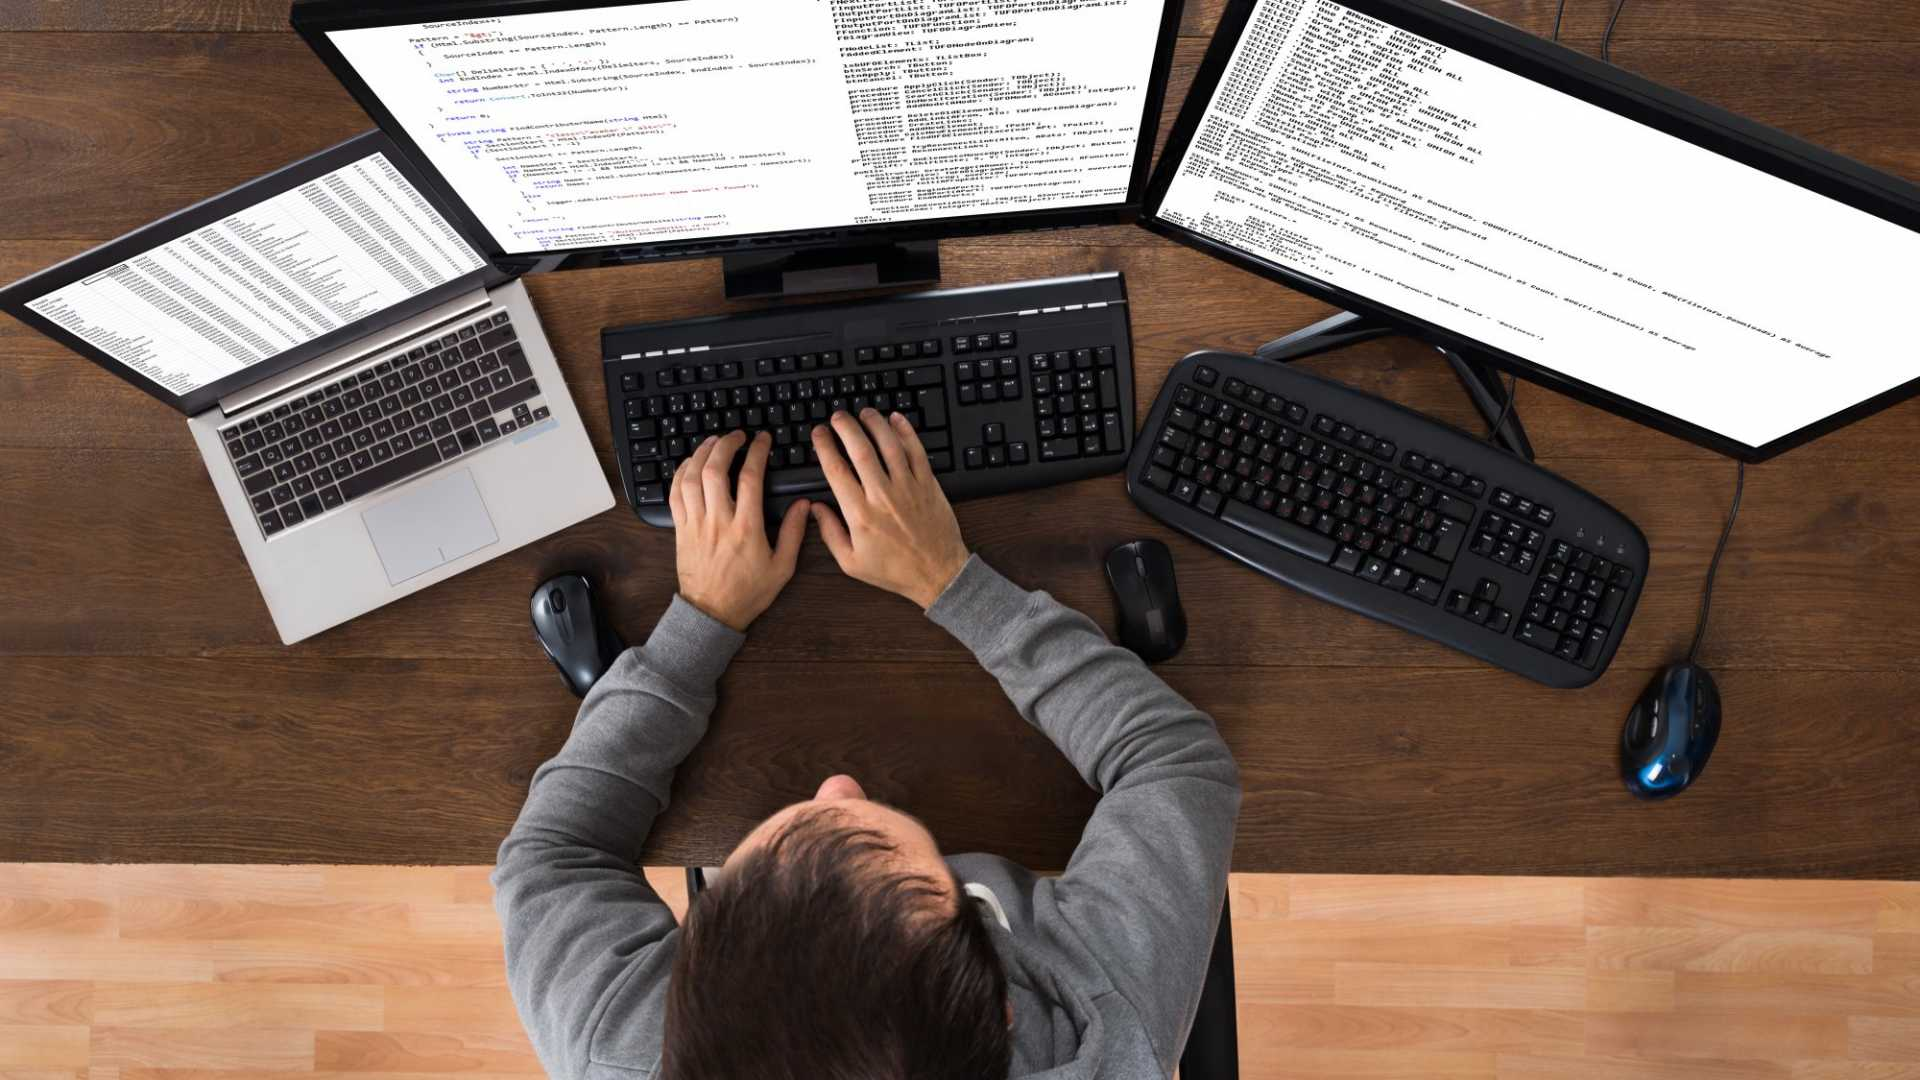 Weighing the Importance of a Computer Science Degree